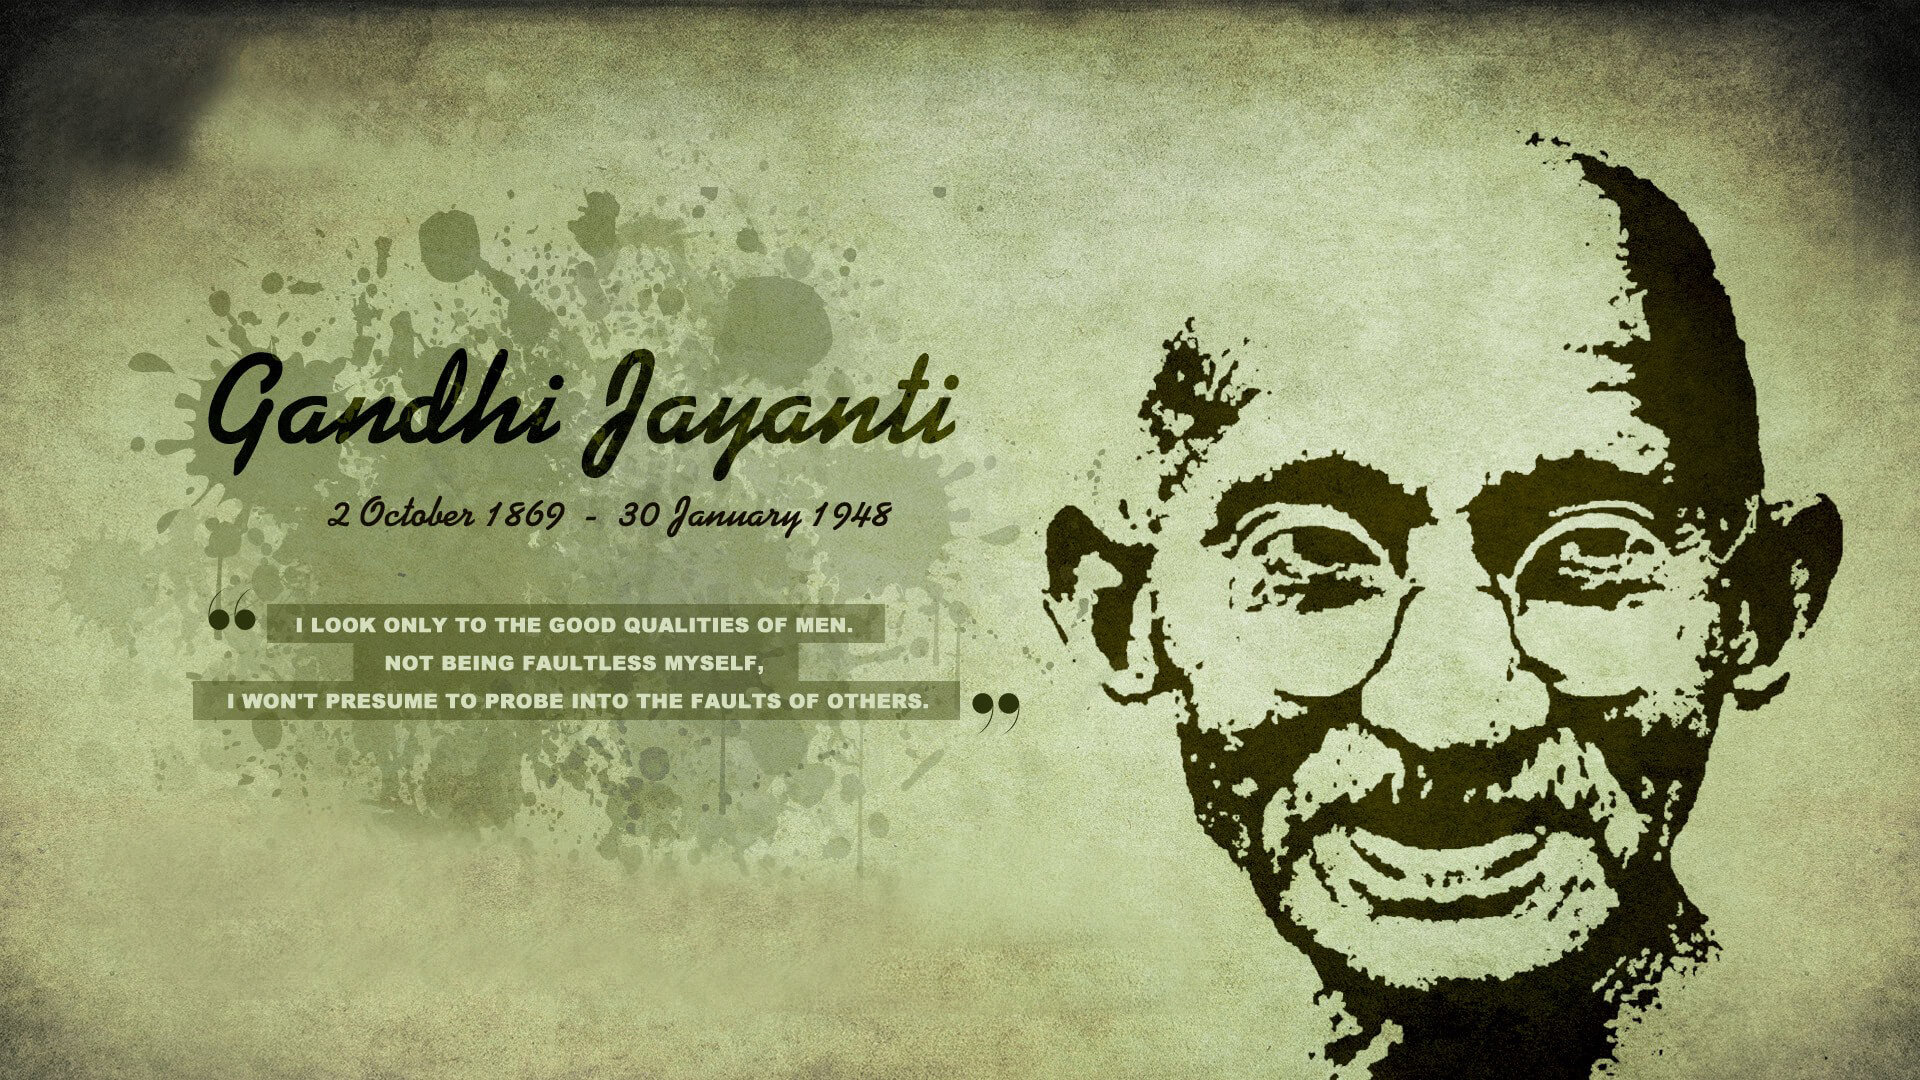 gandhi jayanti october 2 modern wallpaper